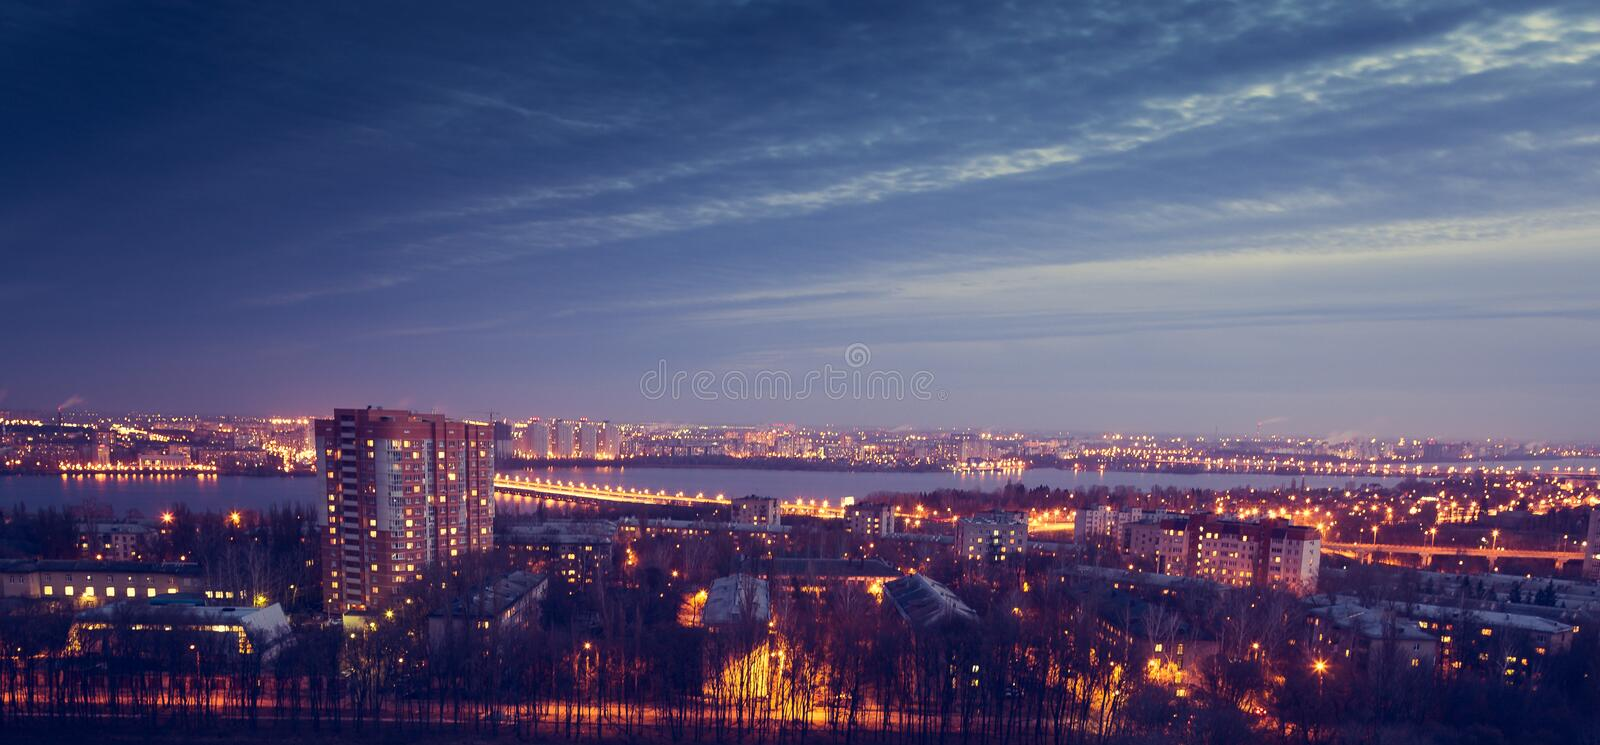 Mysterious dramatic night cityscape view of Voronezh city after sunset. Houses royalty free stock images